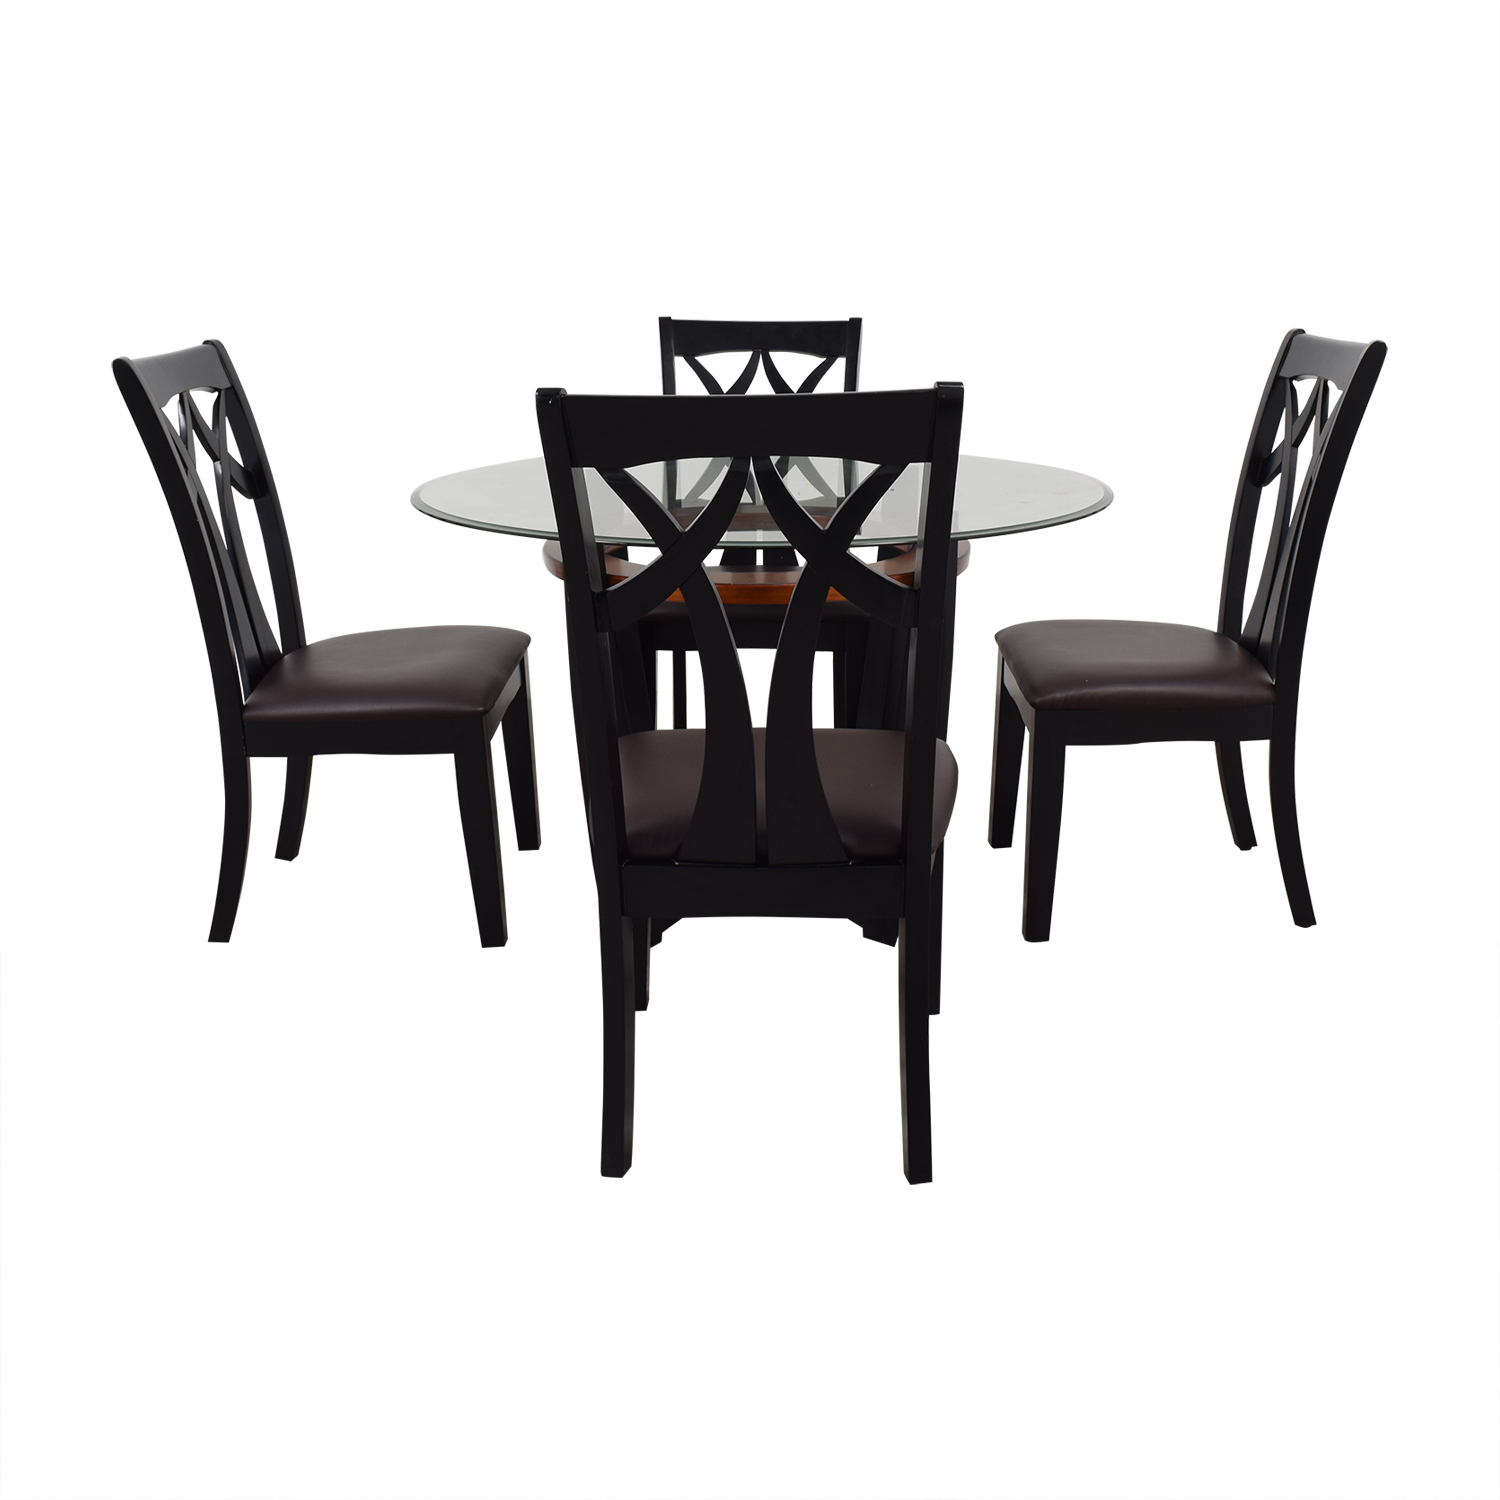 shop Raymour & Flanigan Wood and Glass Dining Set Raymour & Flanigan Dining Sets